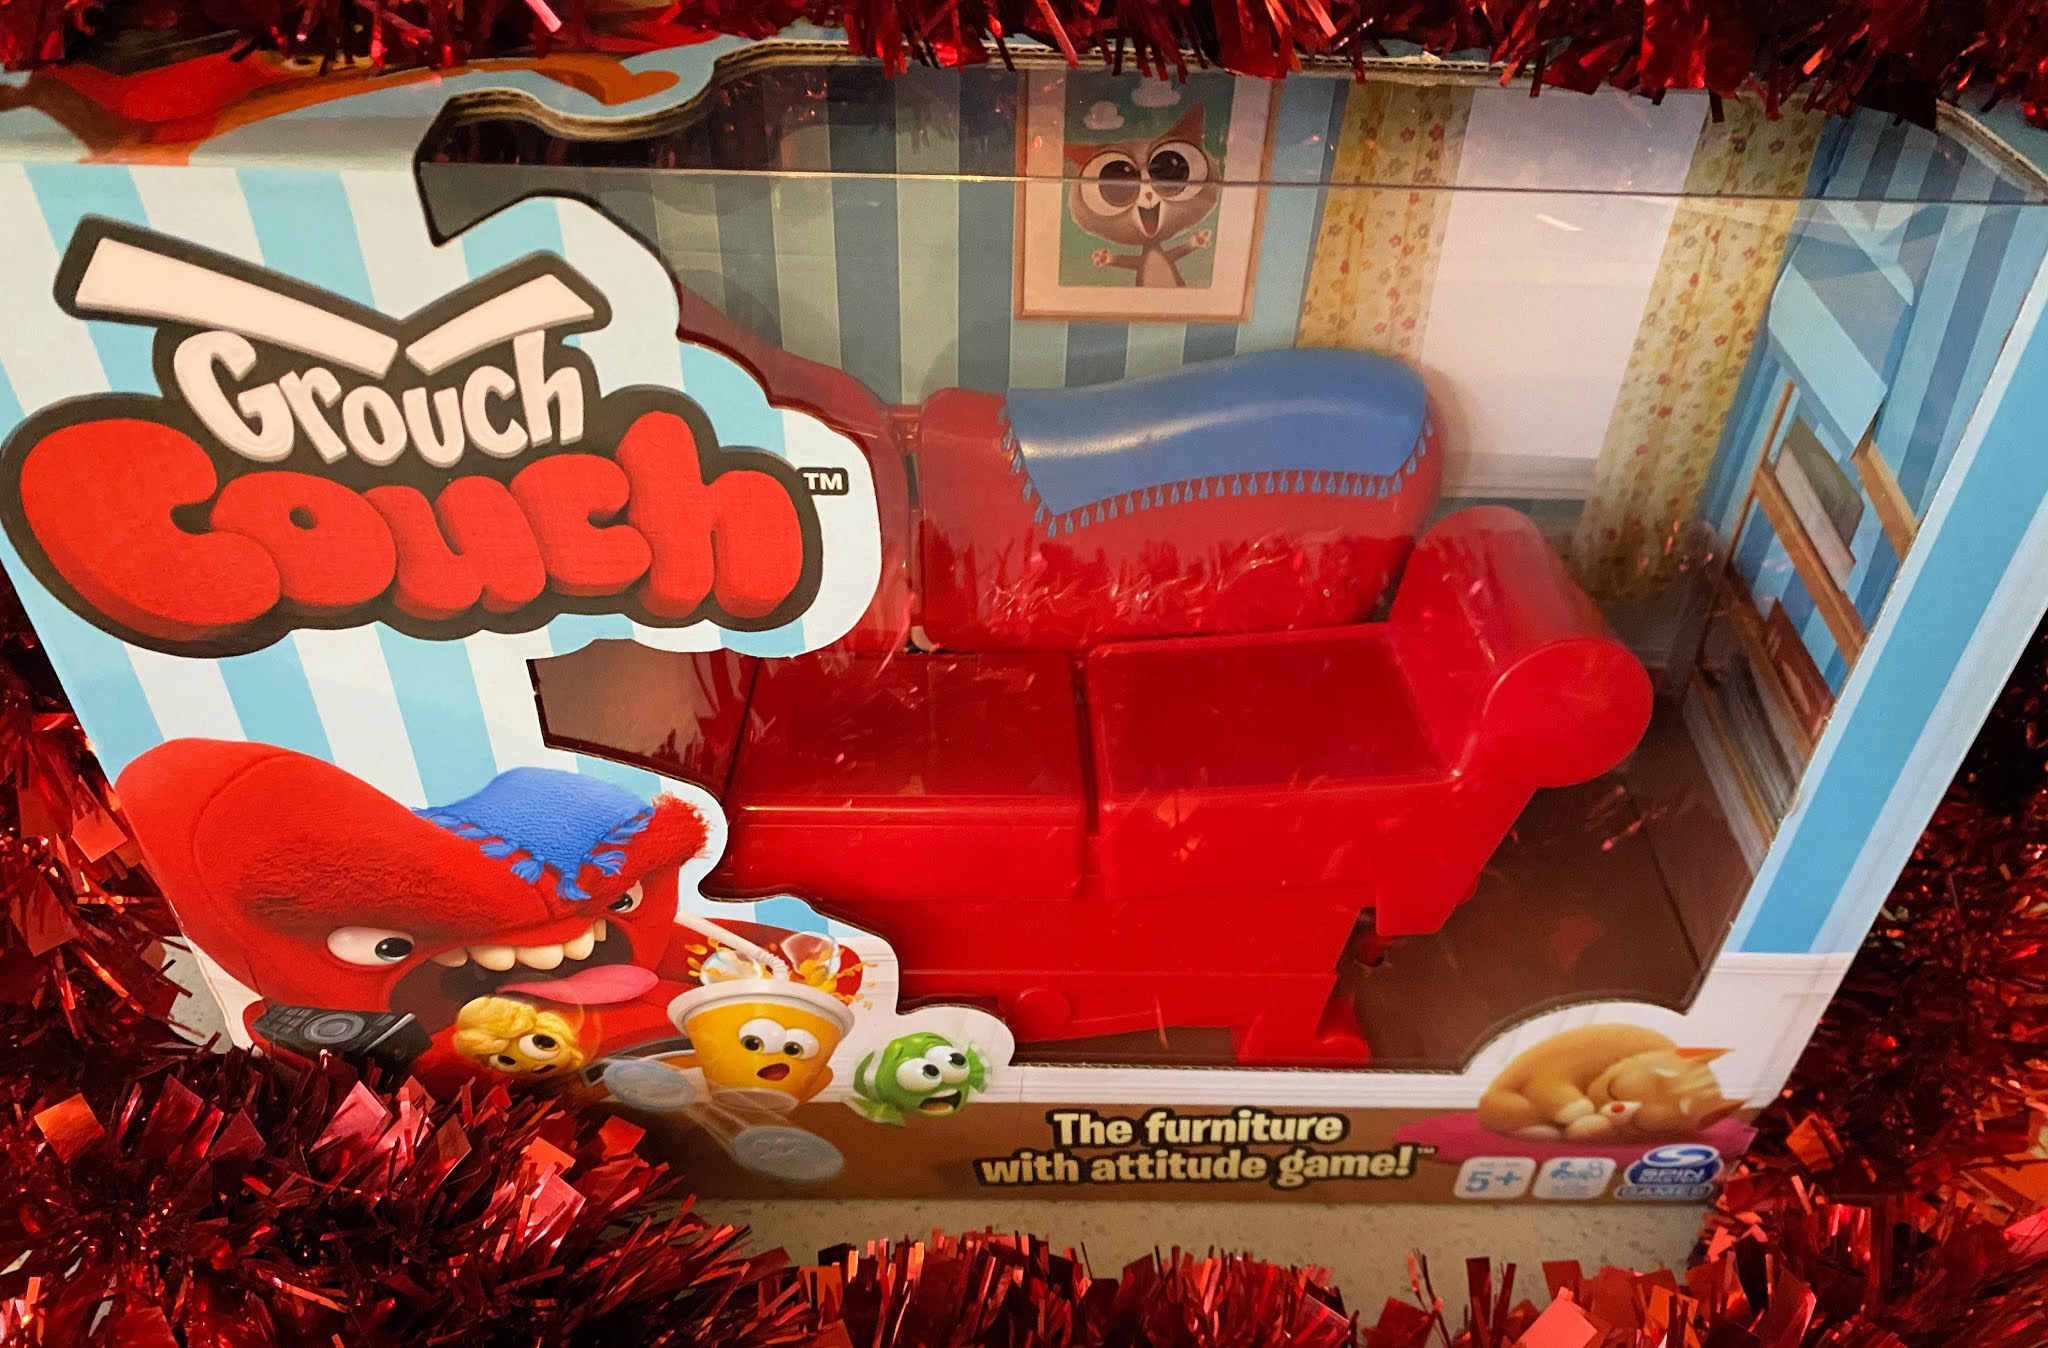 Grouch Couch